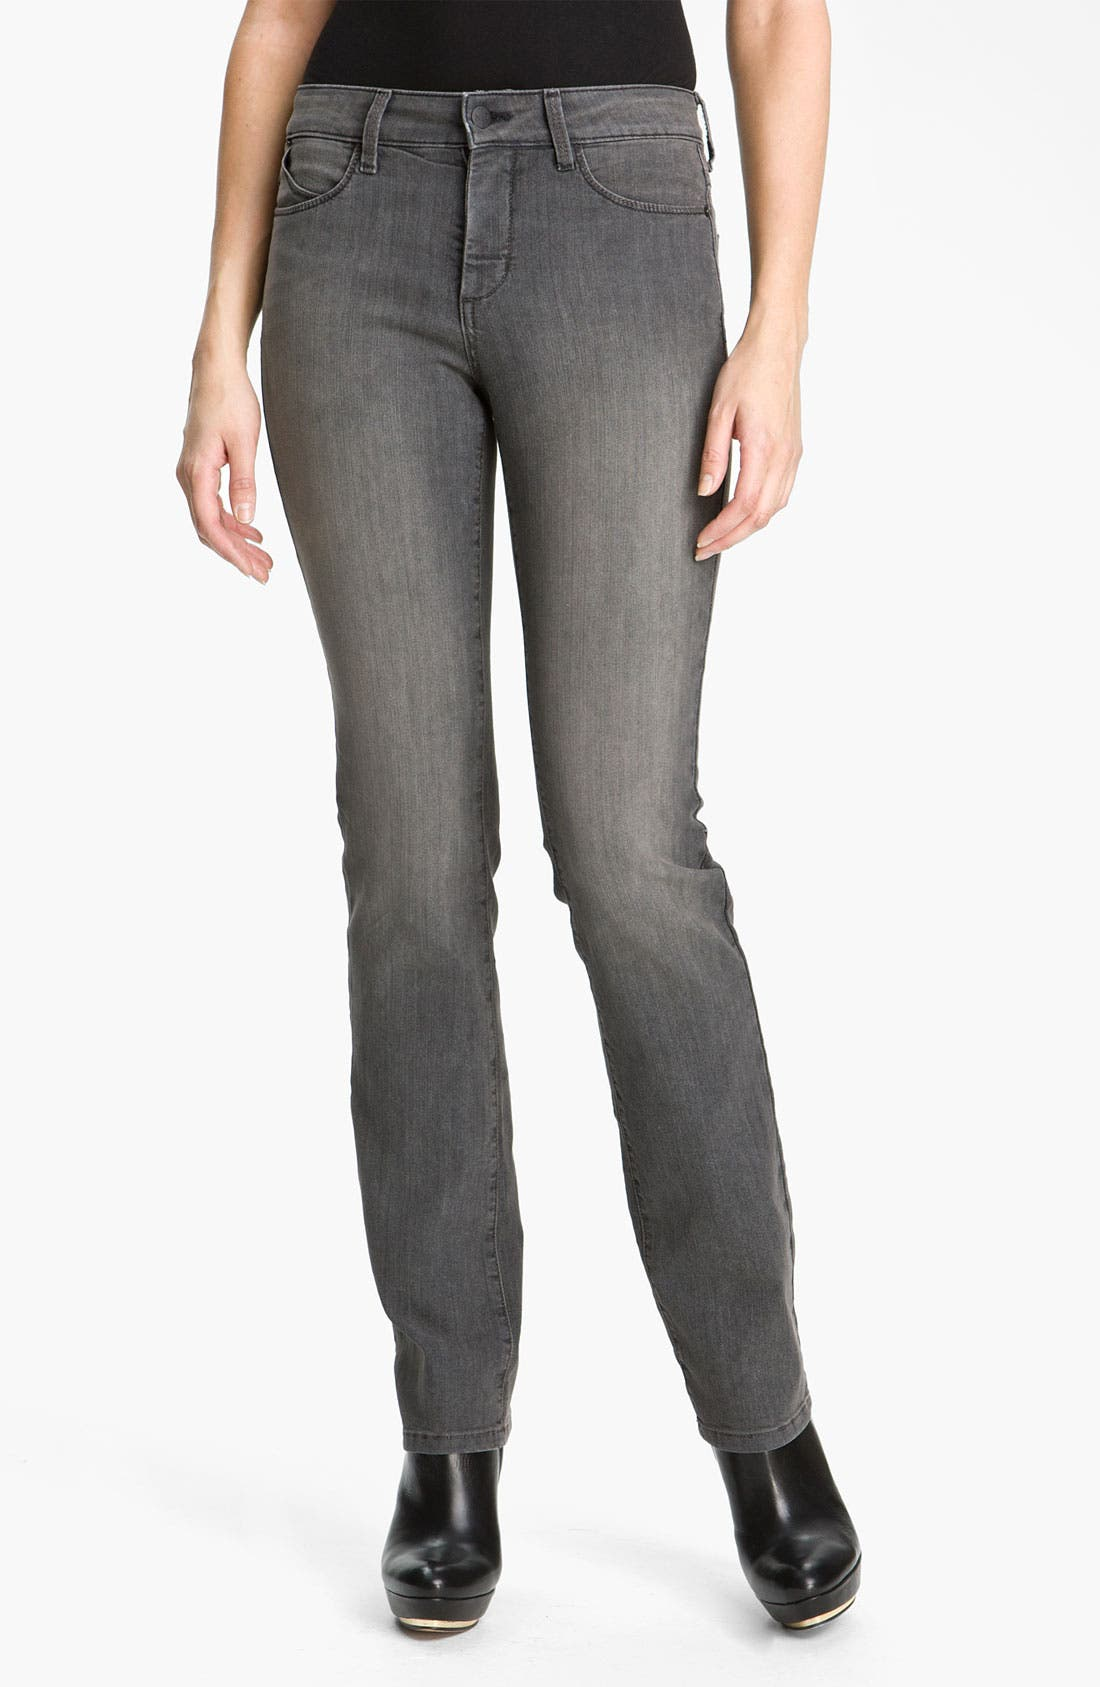 Alternate Image 1 Selected - NYDJ 'Marilyn' Straight Stretch Jeans (Petite)